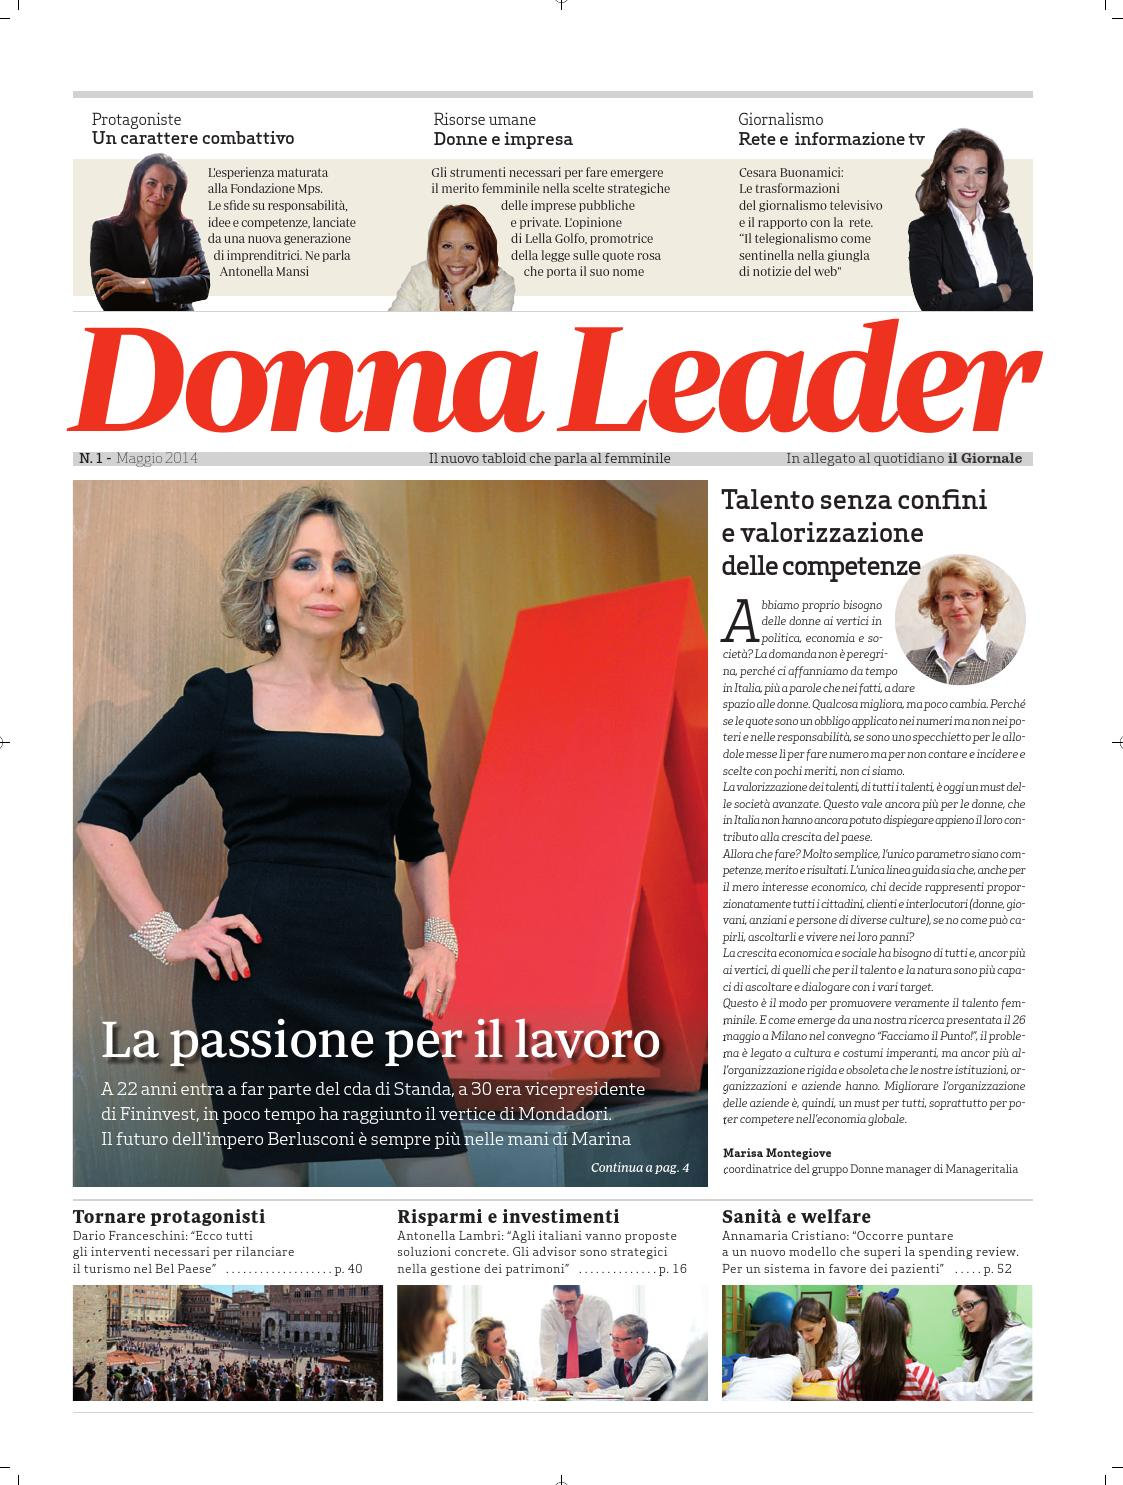 Donnaleader052014 by Foresite - issuu 887116990eb